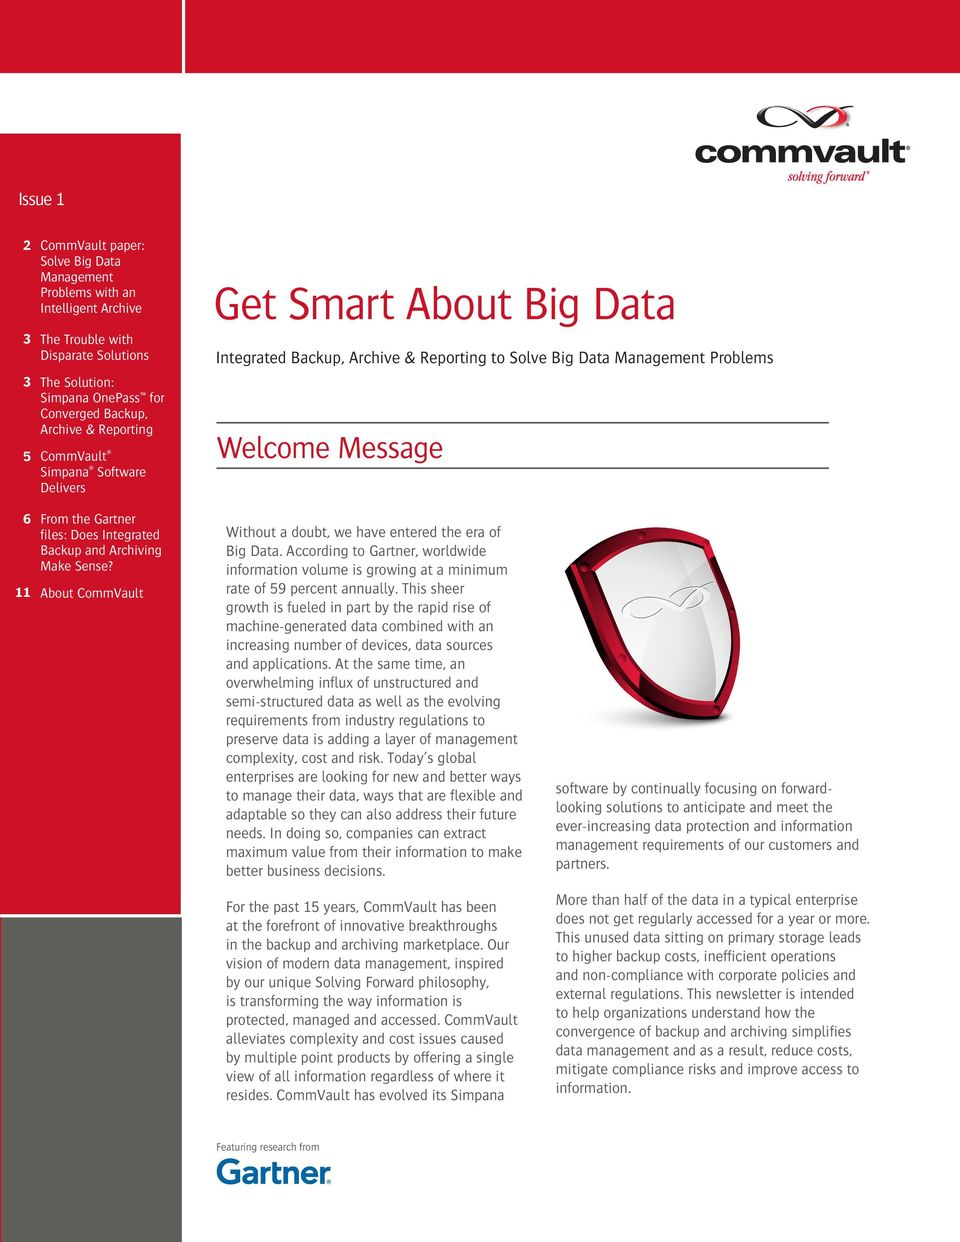 Integrated Backup and Archiving Make Sense? 11 About CommVault Without a doubt, we have entered the era of Big Data.